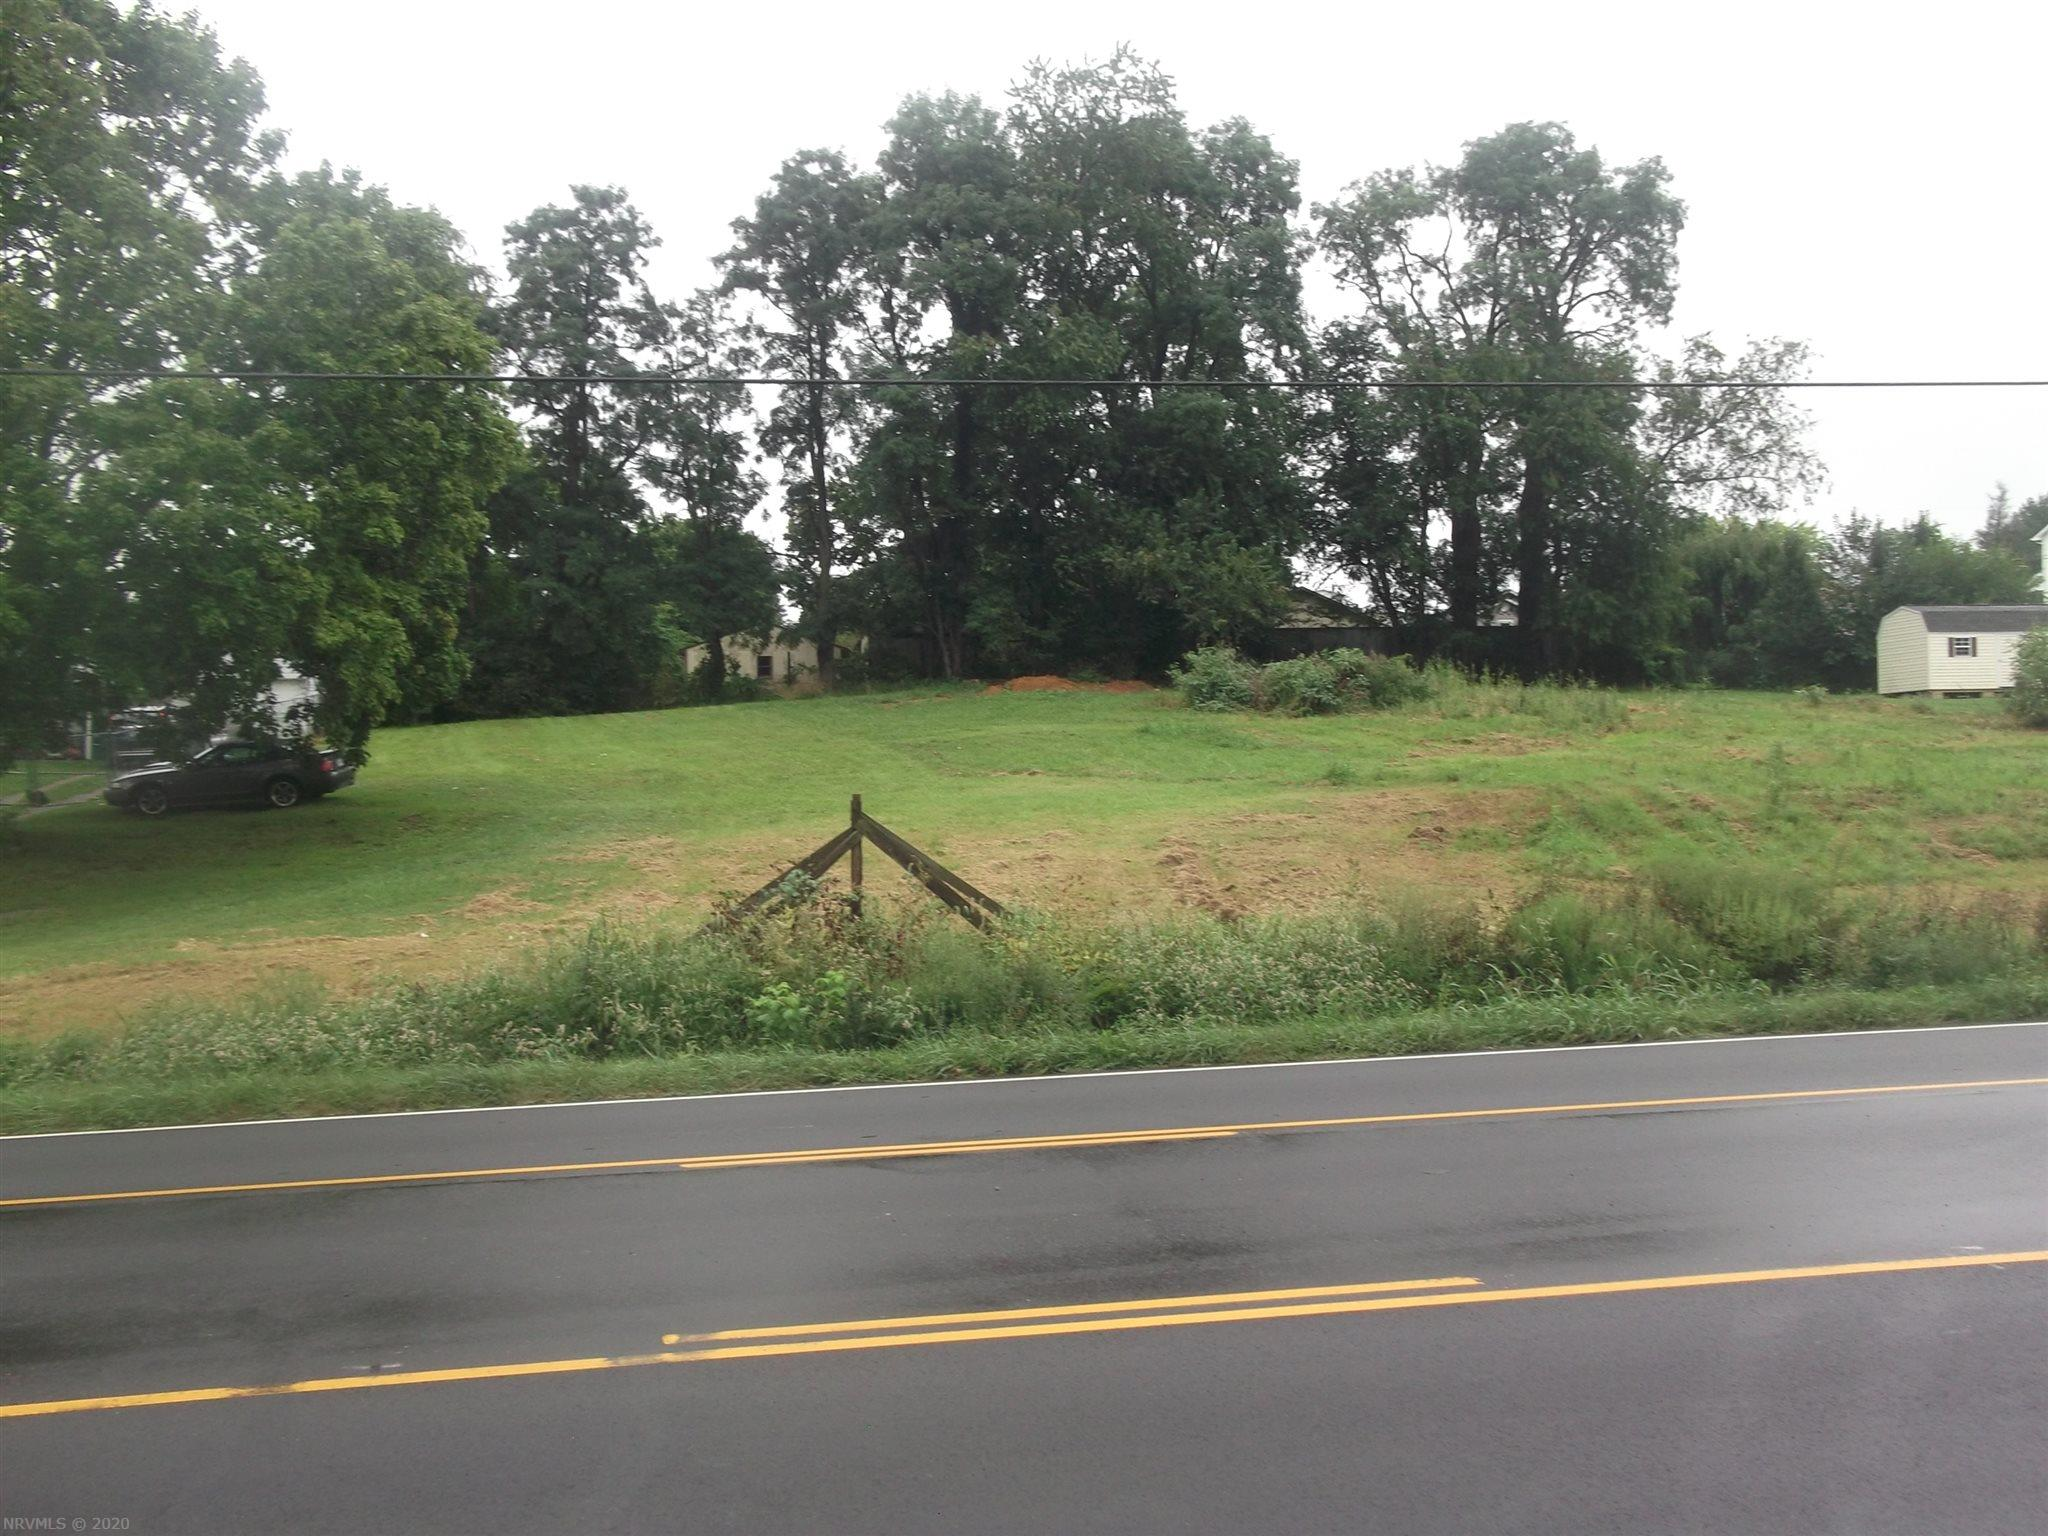 Commercial Lot that would be perfect for 5-7 townhouses.  Great Visibility along a major route.  Property lays well for garage on lower level and 2 story above.  CUP needed to build townhouses.